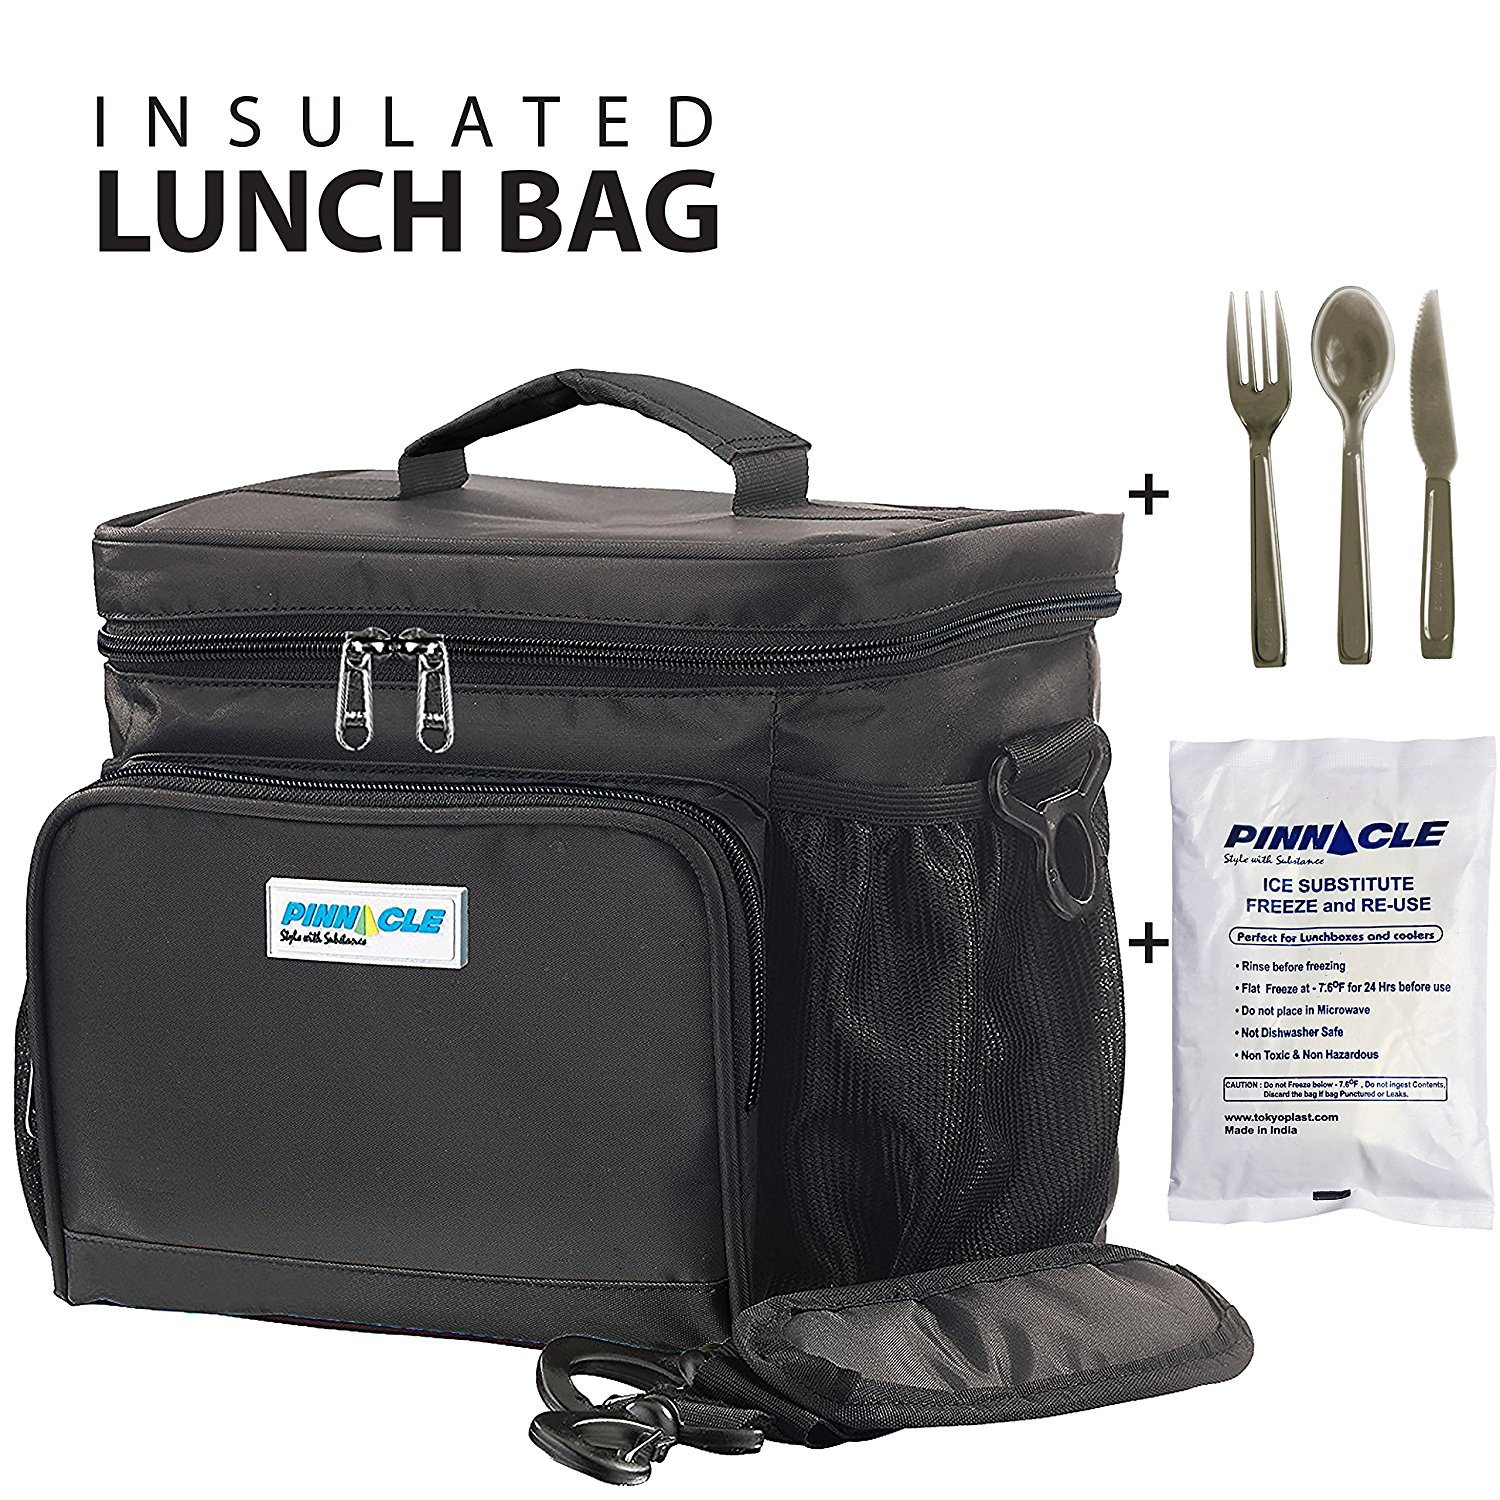 INSULATED LUNCH BAG KIT For Work - Pinnacle Cooler Bag for Adults, Ladies and Men + GEL ICE PACK and MATCHING CUTLERY - Durable Nylon, Double Zipper – Black